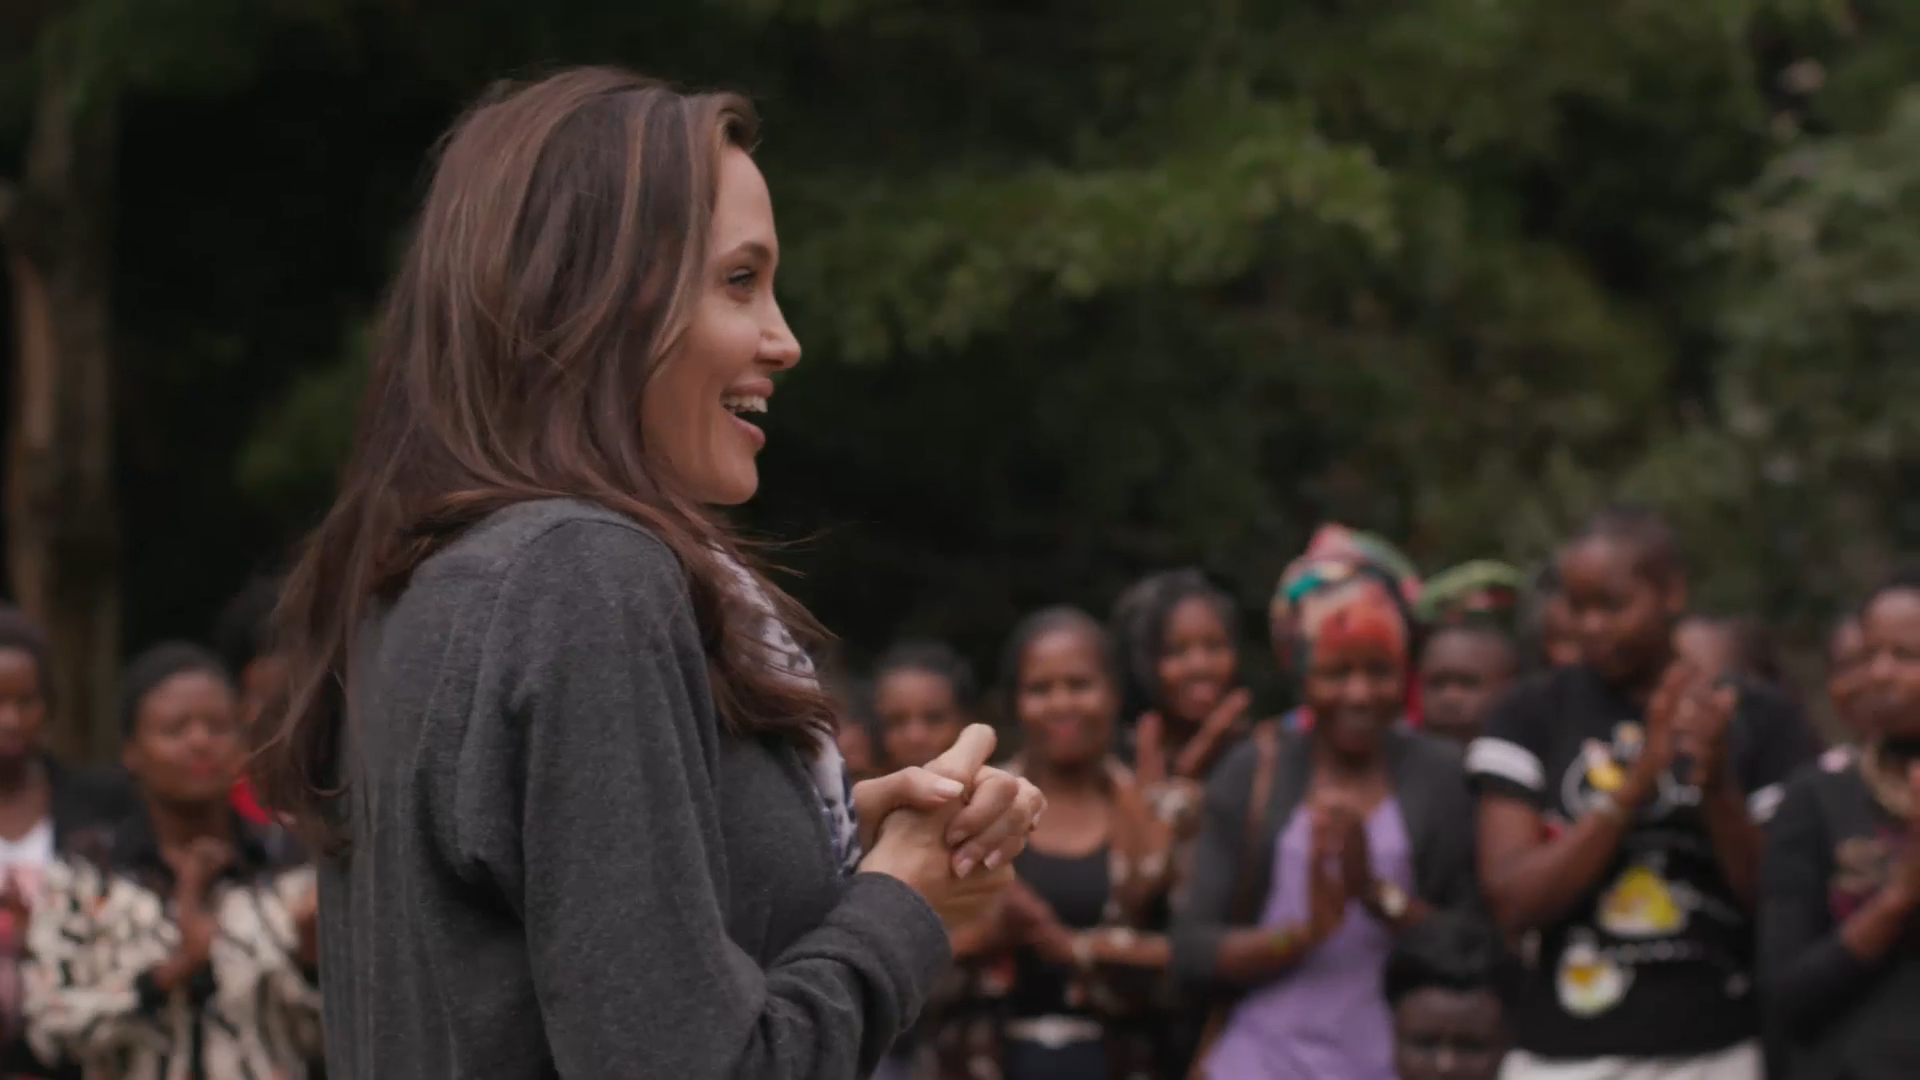 Angelina Jolie Confirms Marvel Superhero Role at Comic-Con San Diego